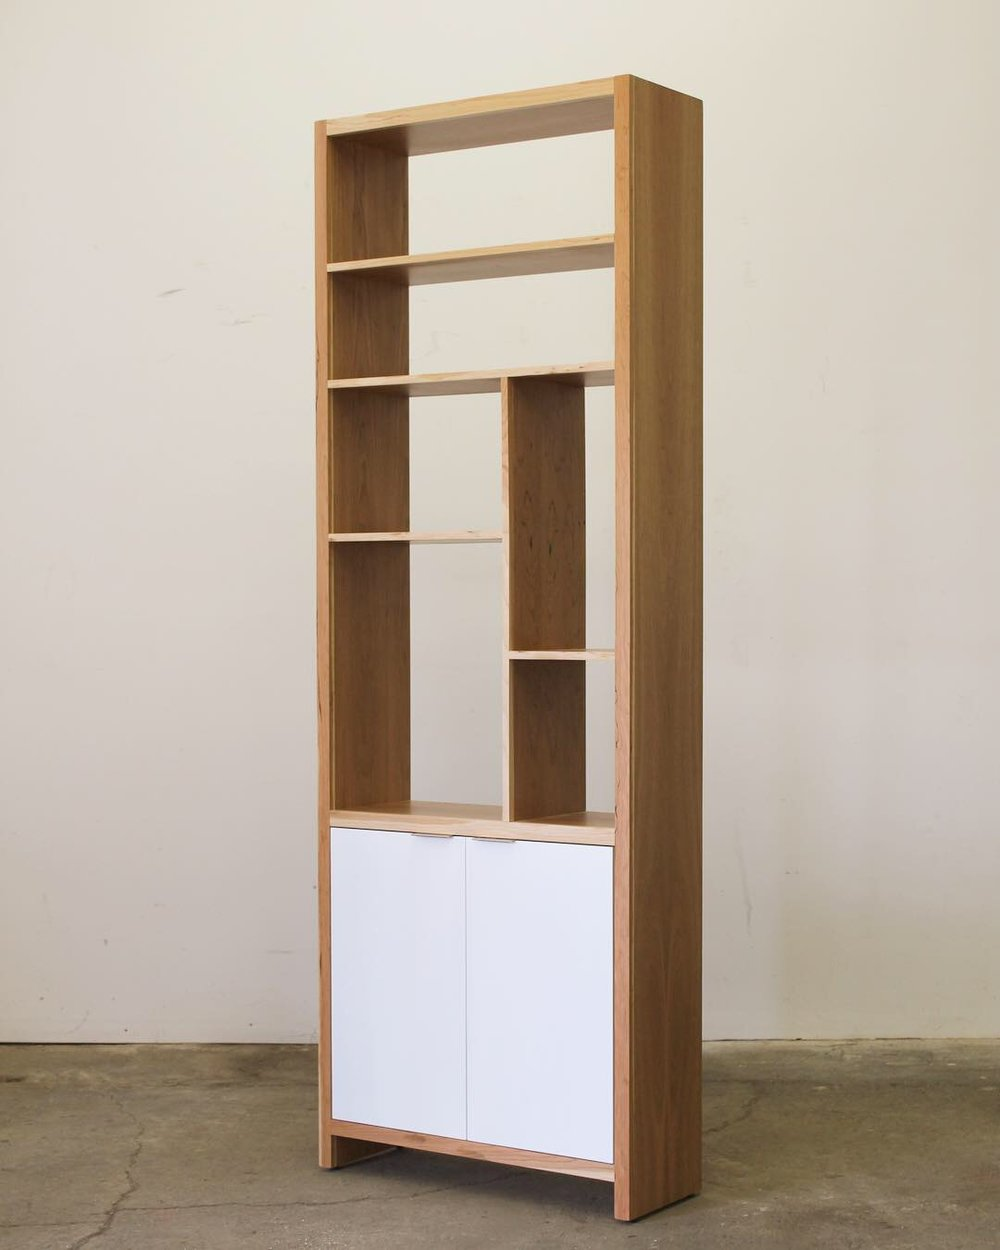 Cherry Asymmetrical Shelving Unit   This shelving unit features cherry veneer with hard wood edge taping and a white cabinet below. It measures 30'' W x 12'' D x 94'' H.  $2500